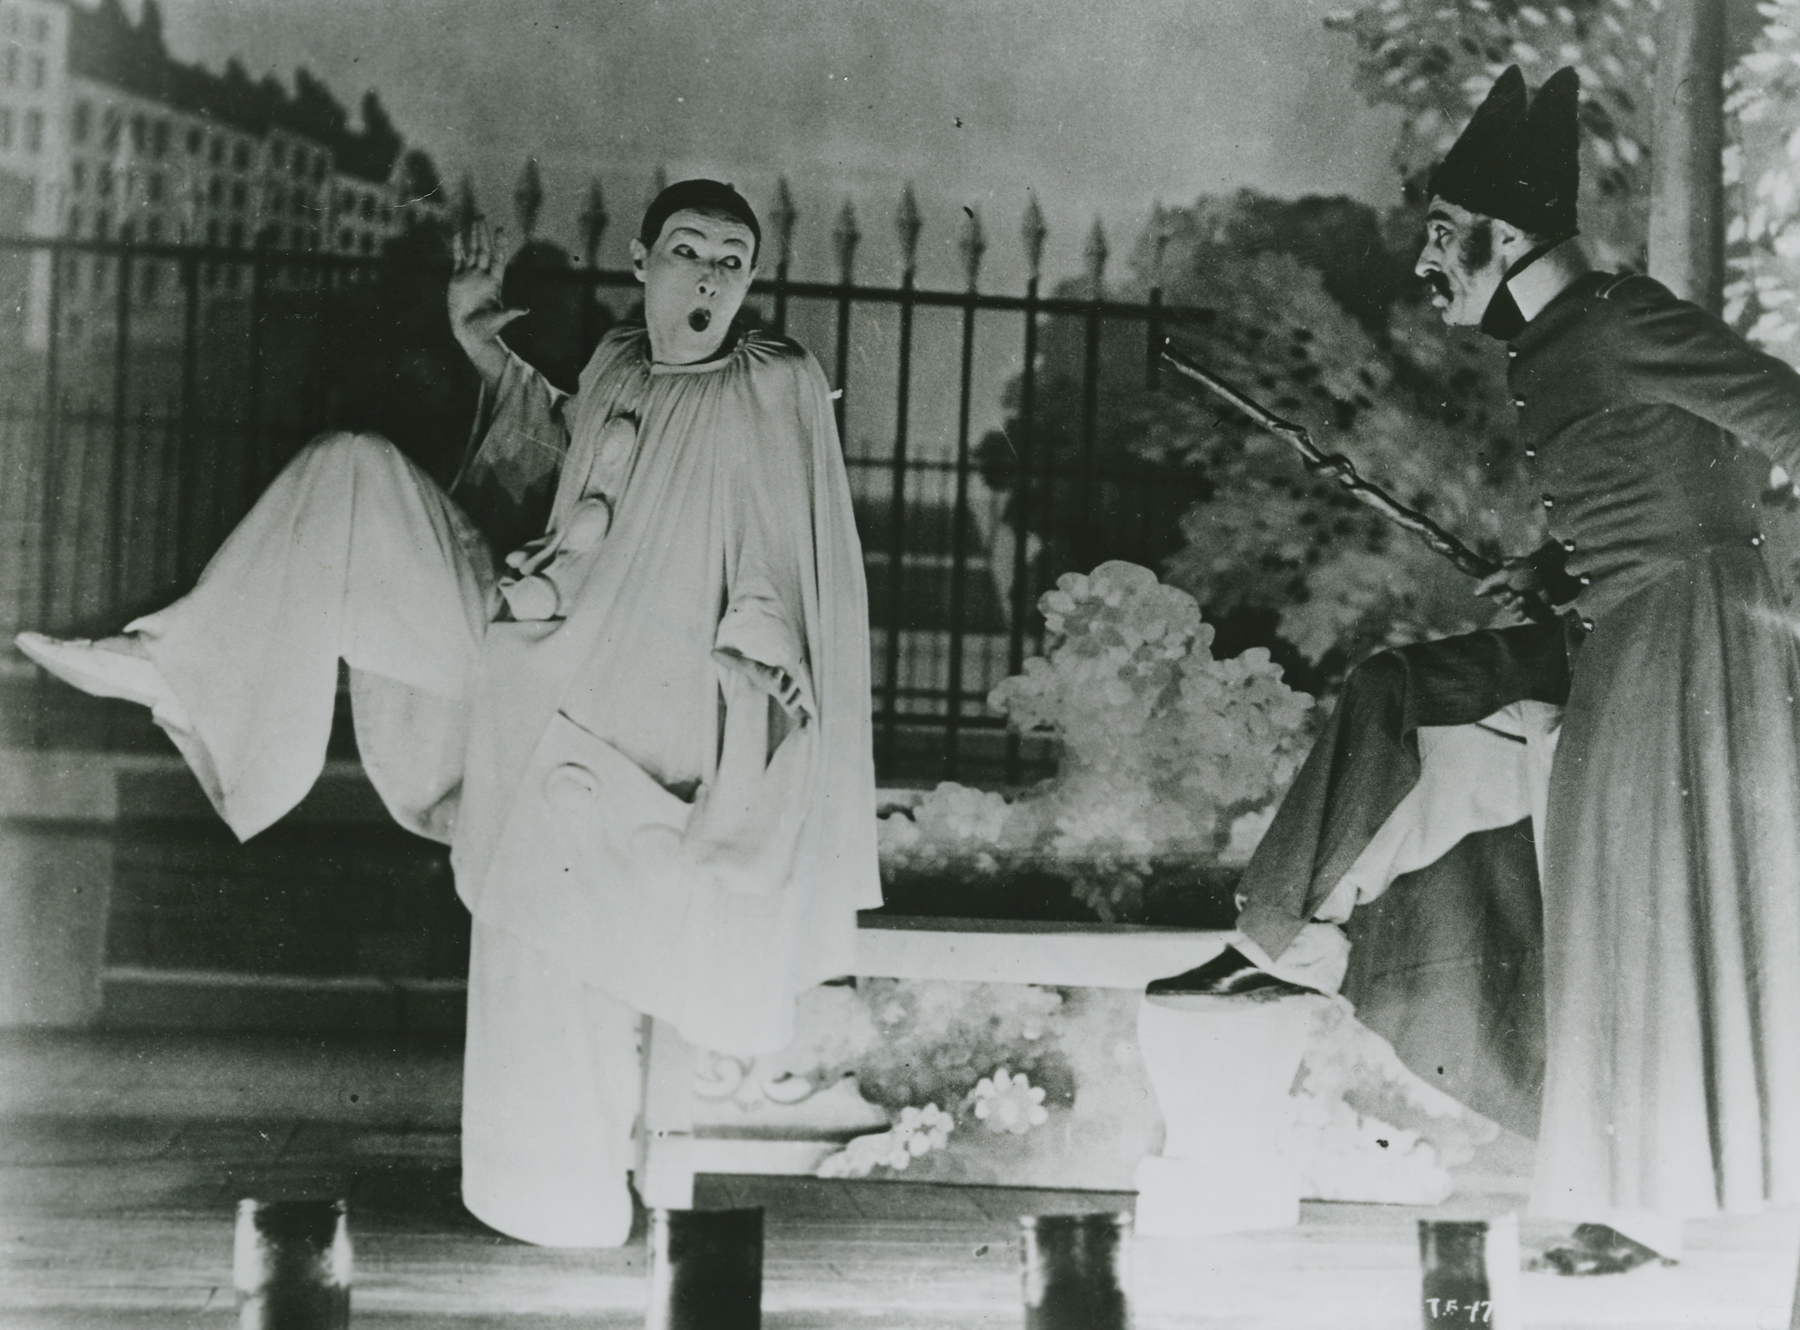 Jean-Louis Barrault and Etienne Decroux in Les enfants du paradis (1945)